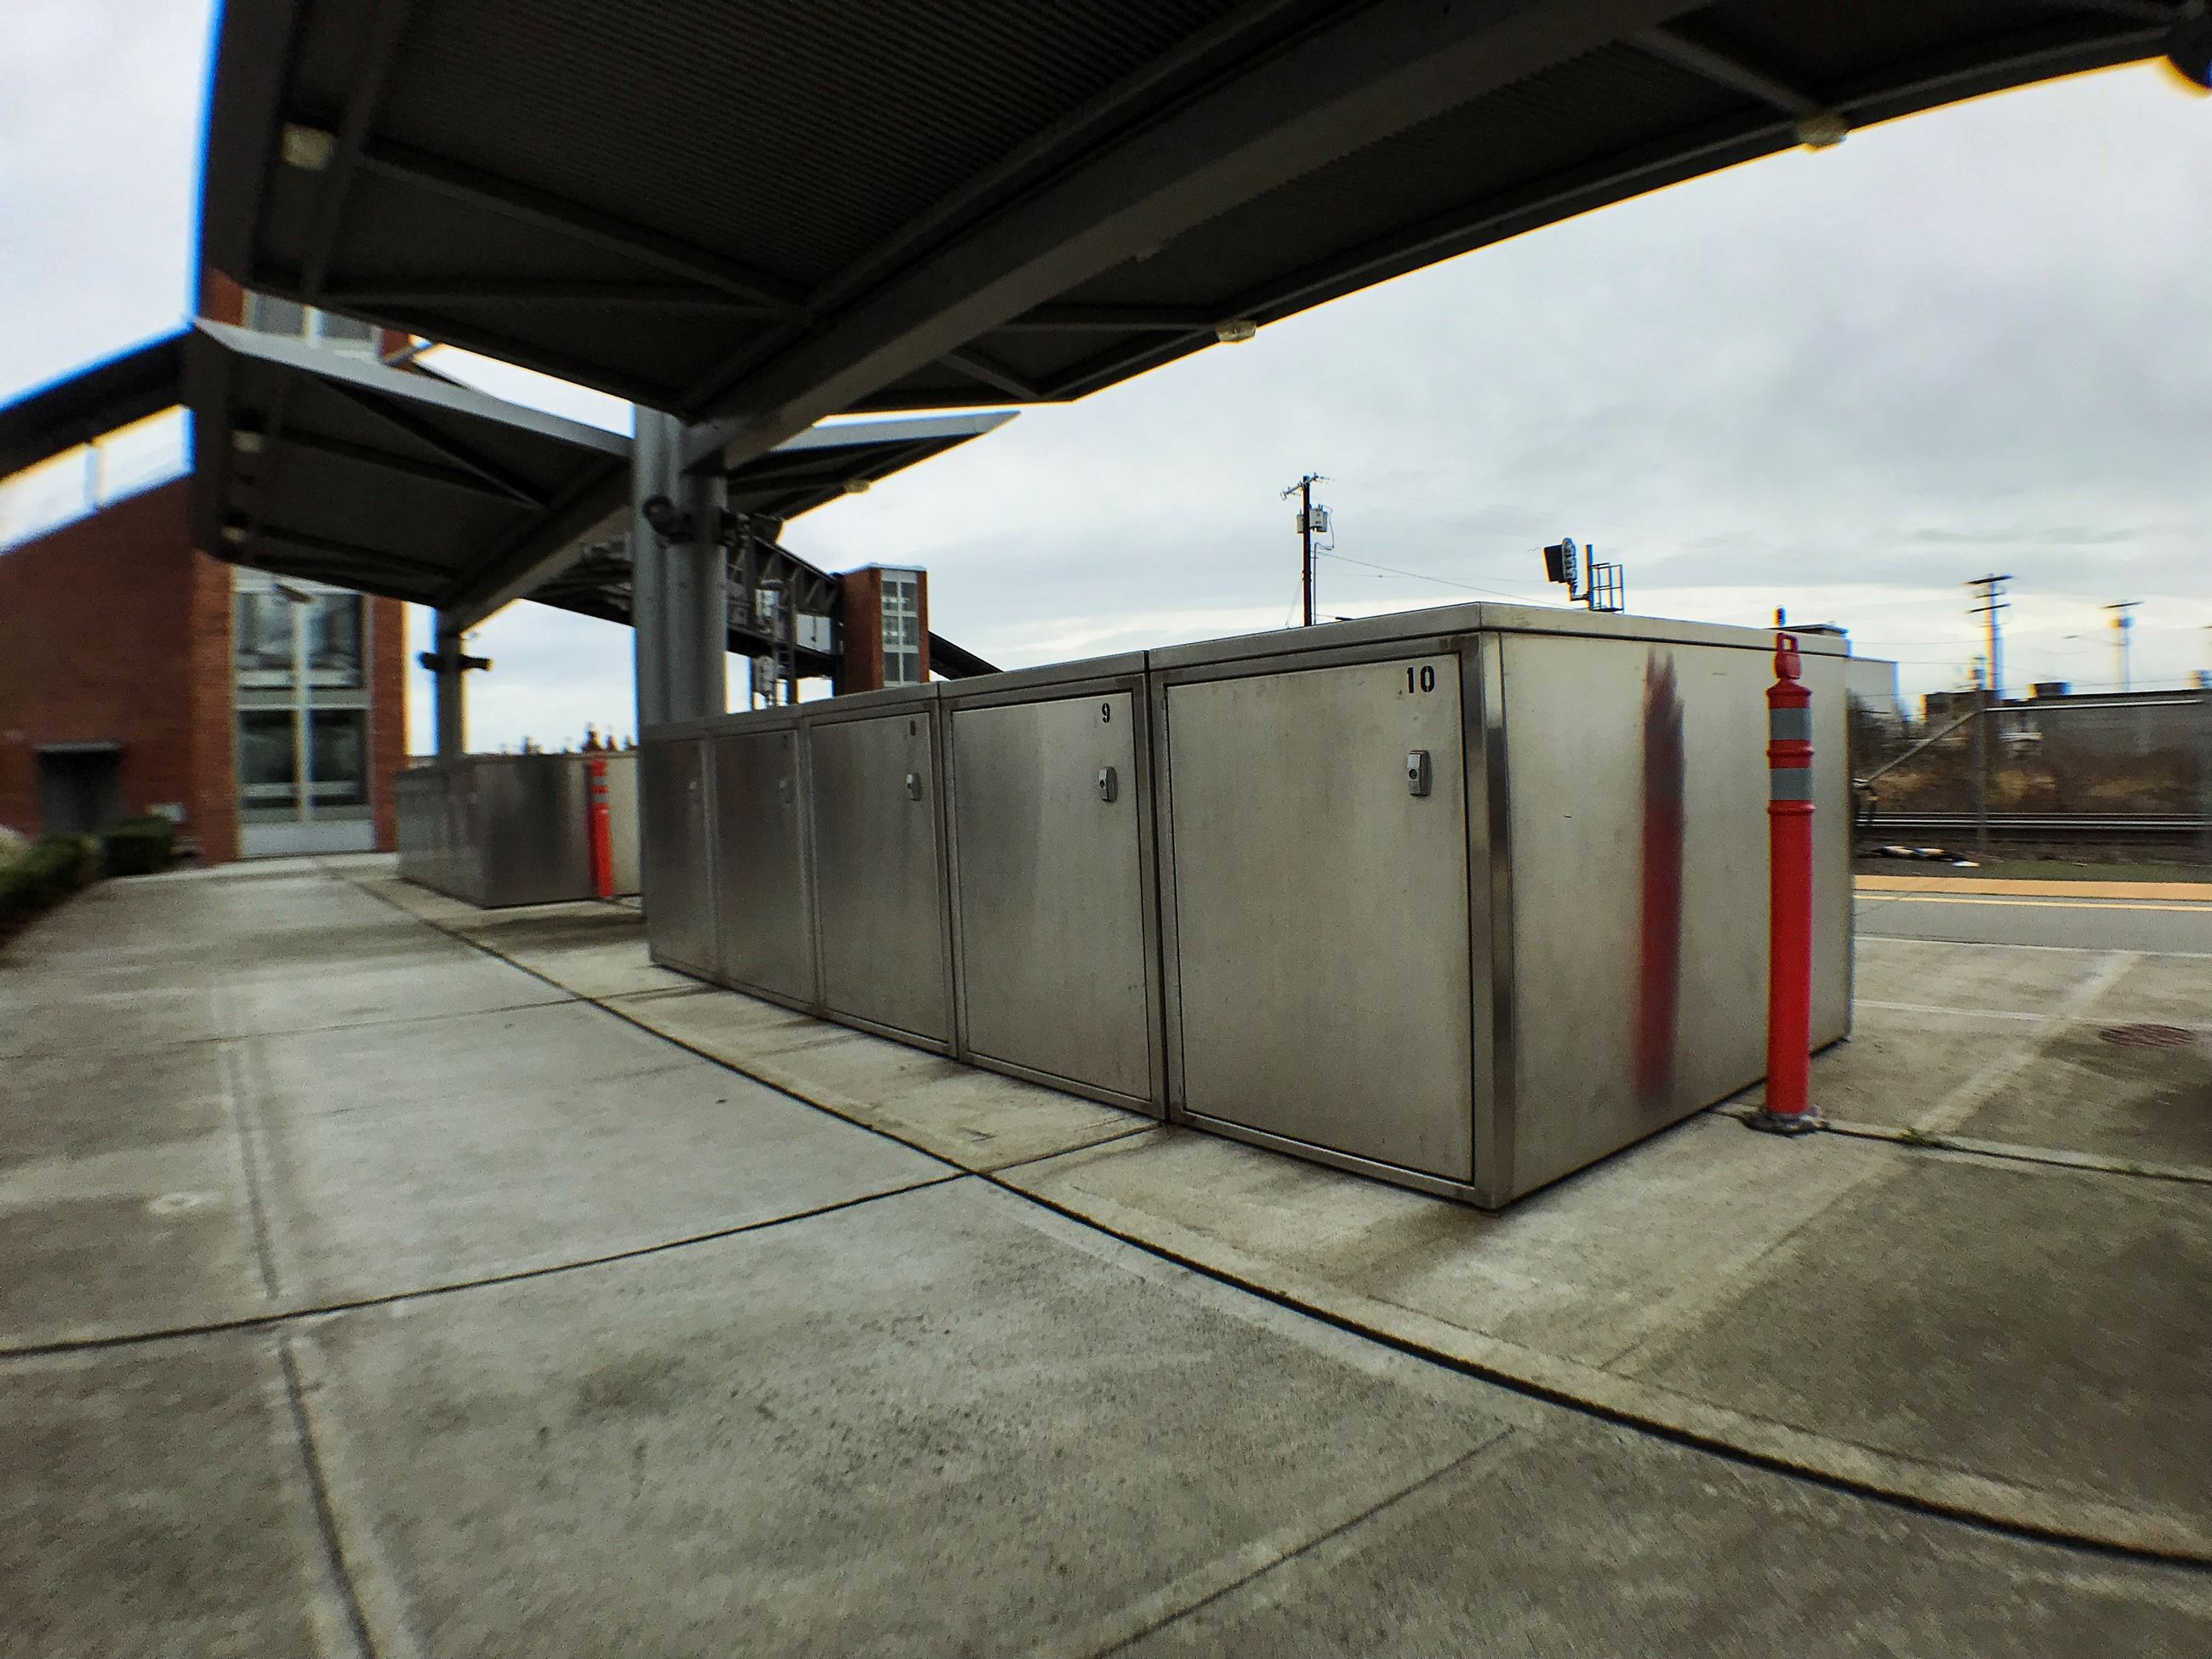 Bike Lockers [Everett Station]